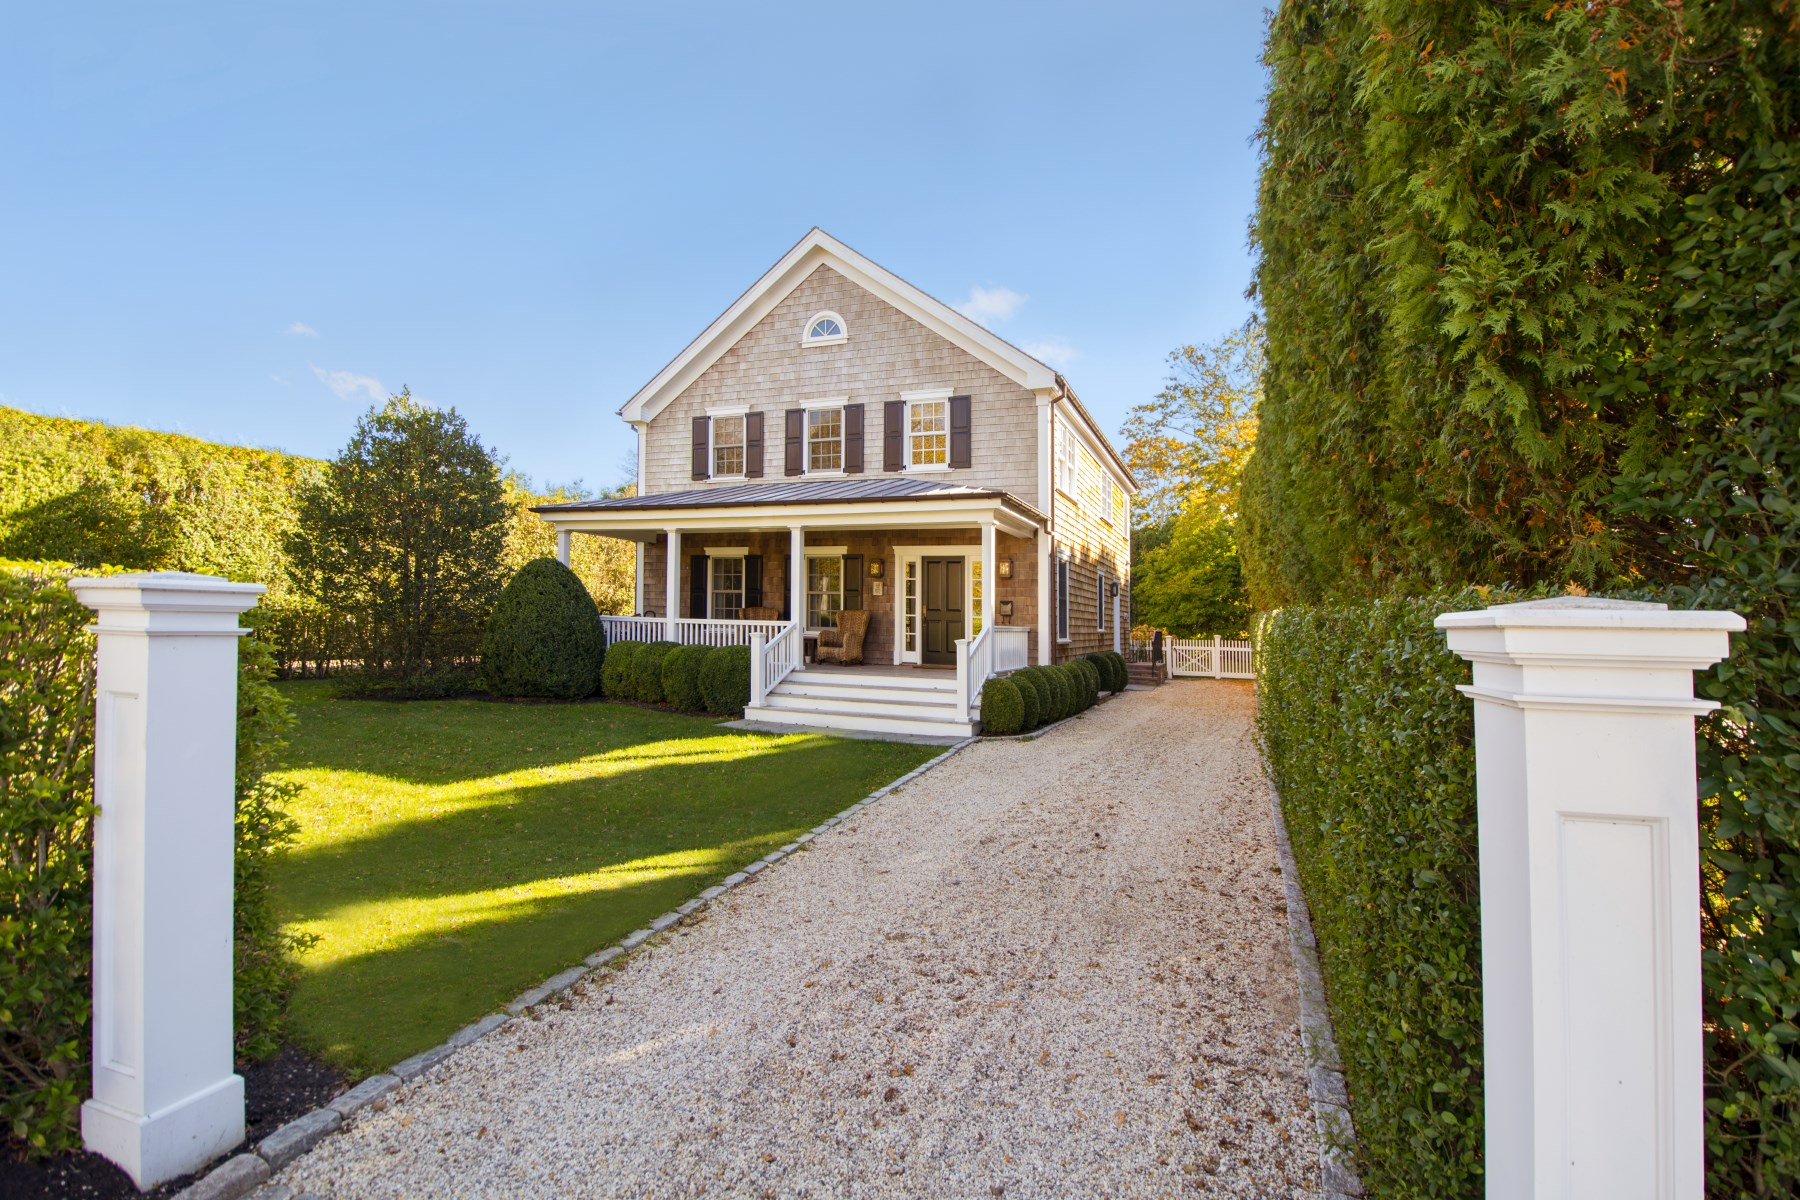 Single Family Home for Sale at Sweet Shingle-Sided Village Traditional 62 Culver Street Southampton, New York, 11968 United States